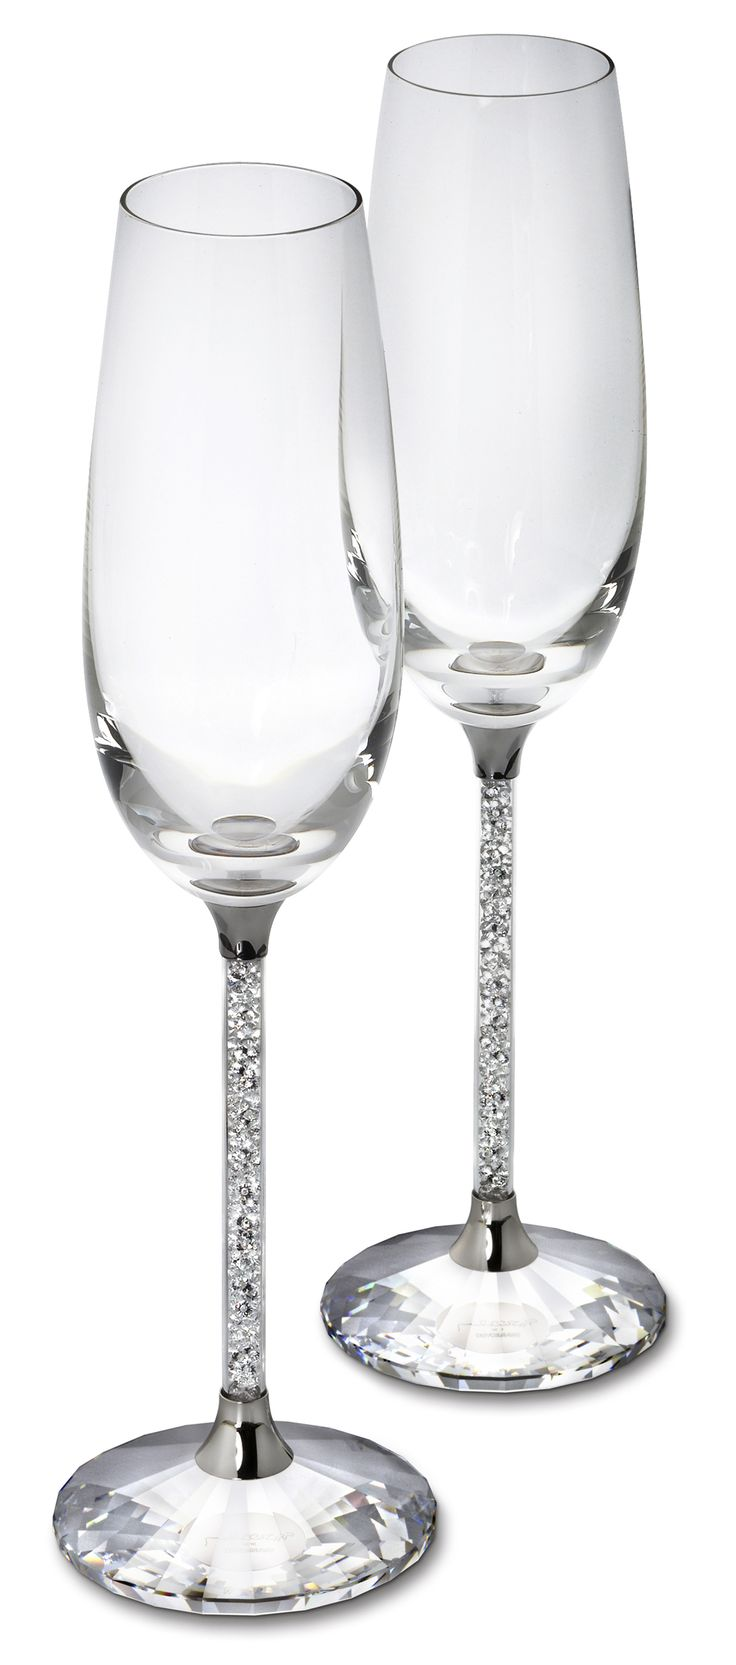 Make a dazzling Christmas or New Years toast! @Swarovski Holiday Party Style: Crystalline Toasting Flutes #Moments2Give